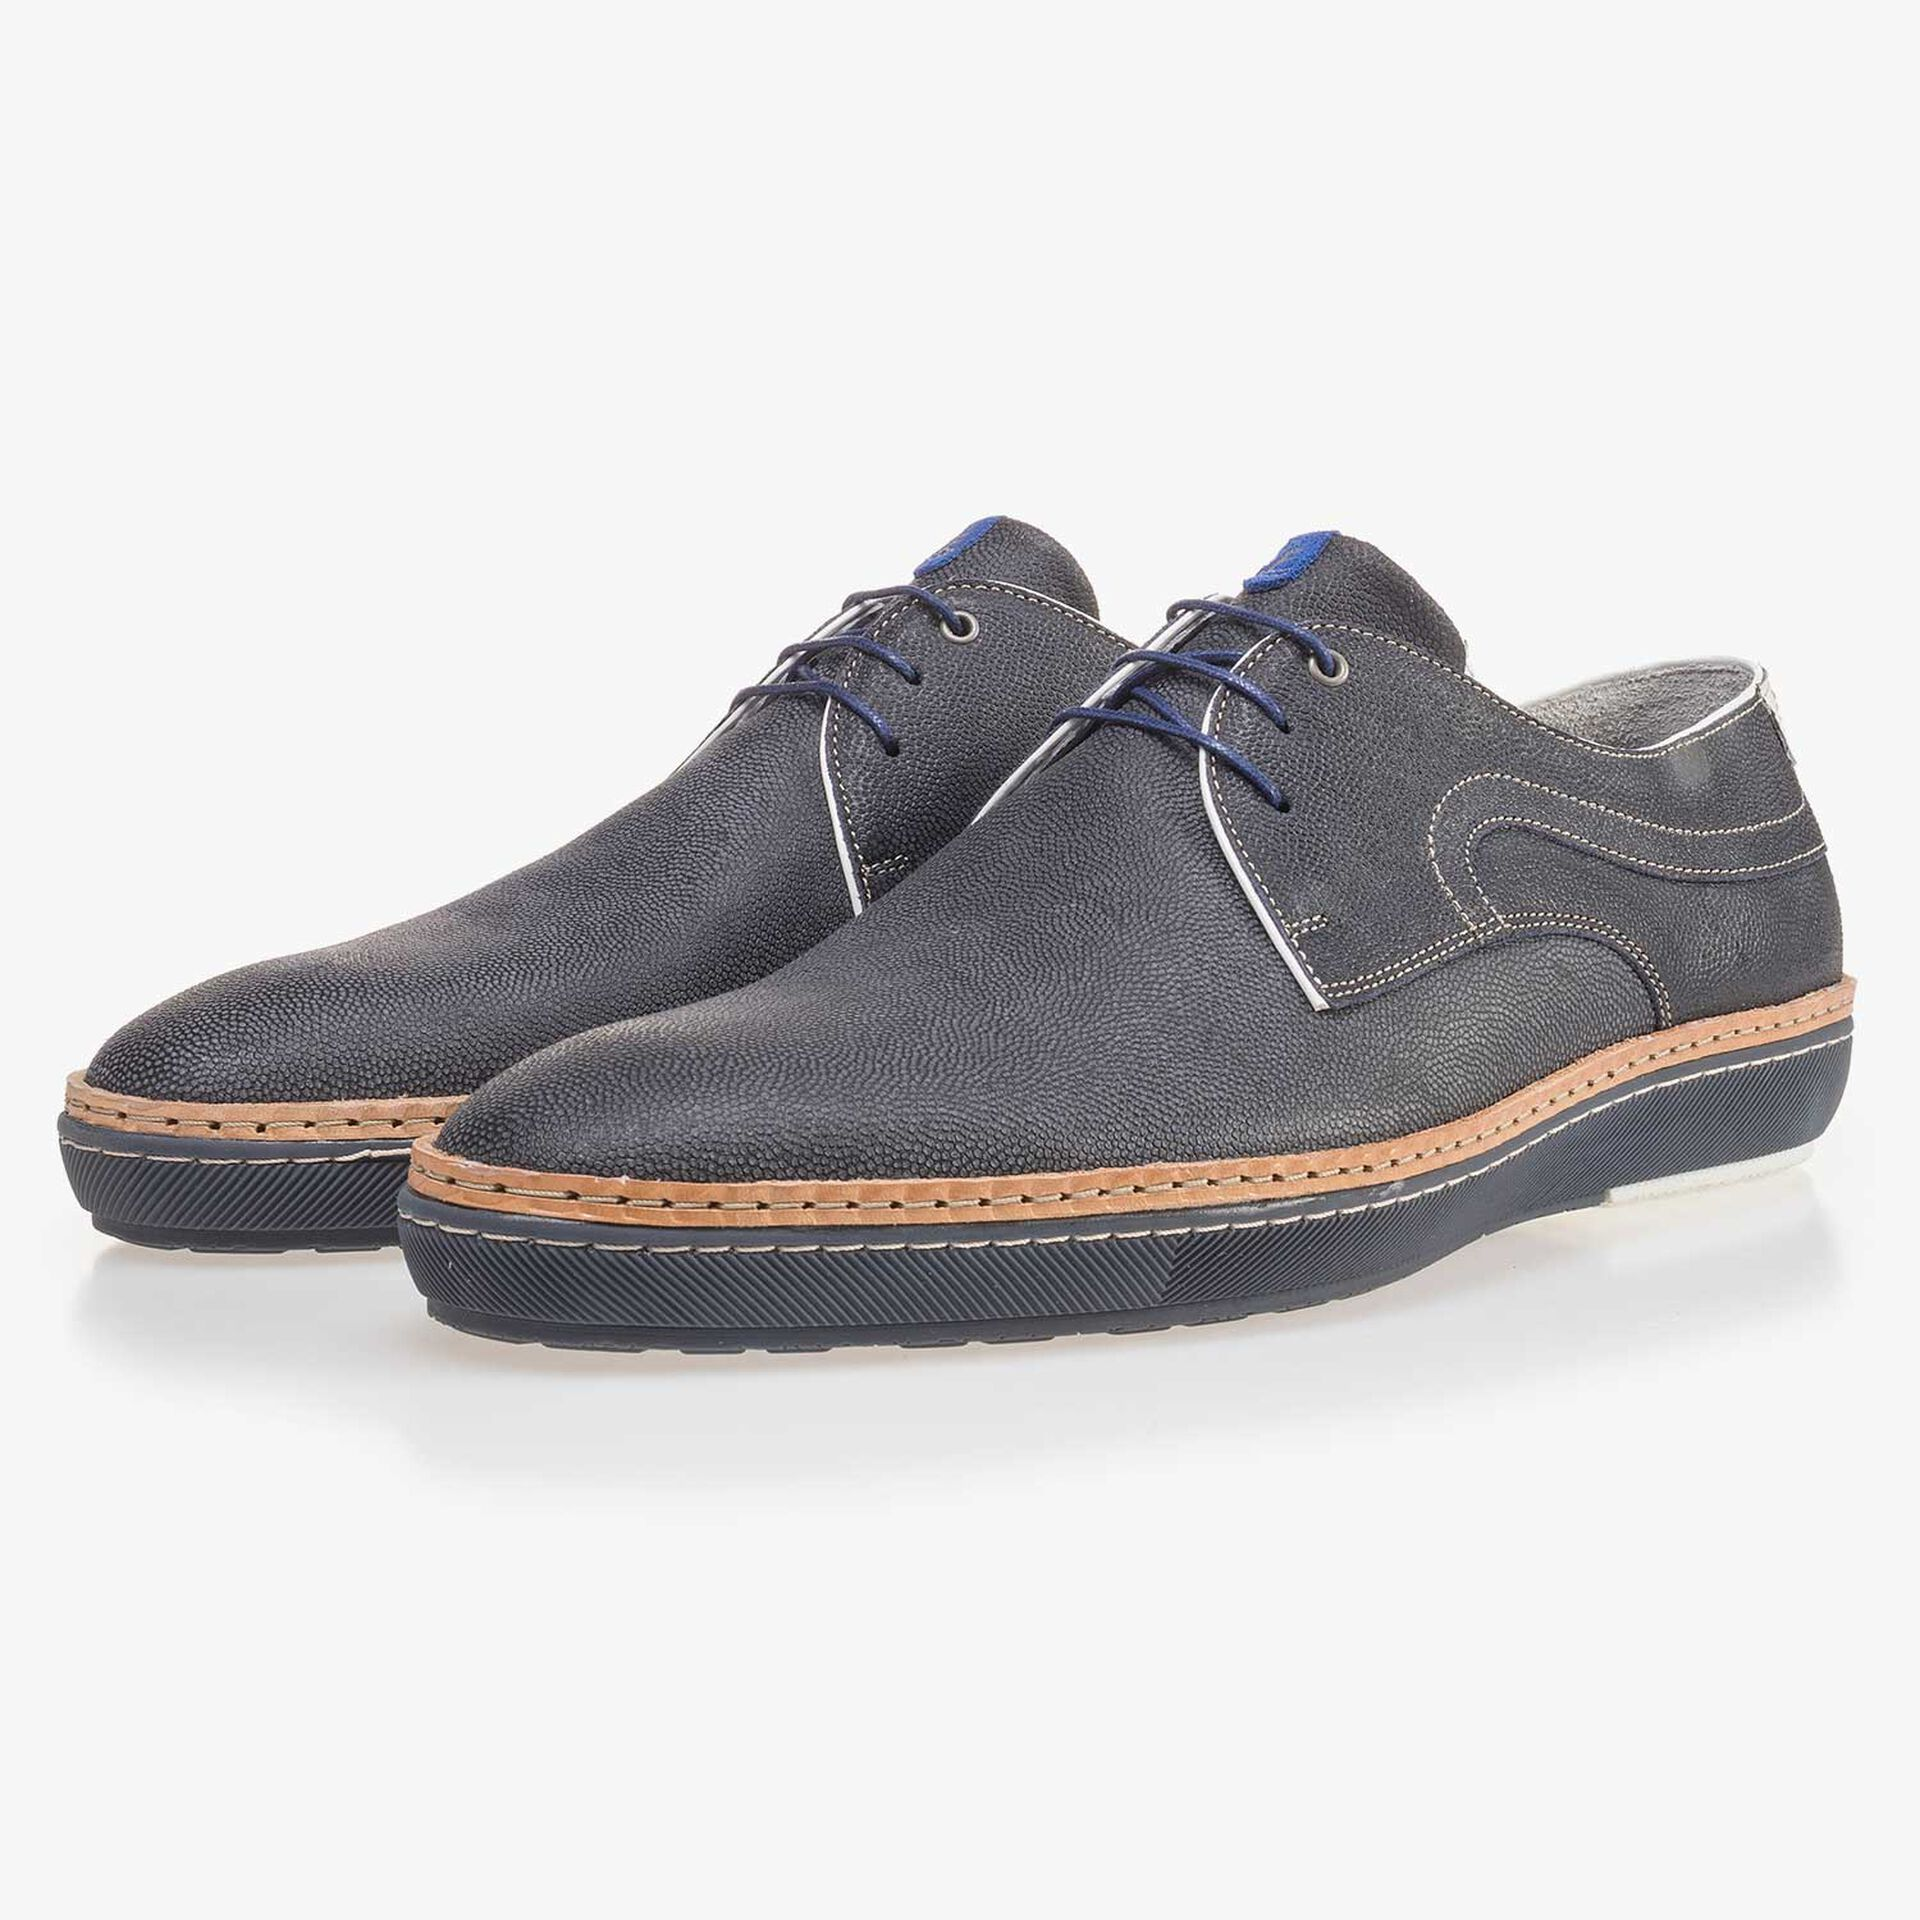 Blue patterned lace shoe made of suede leather